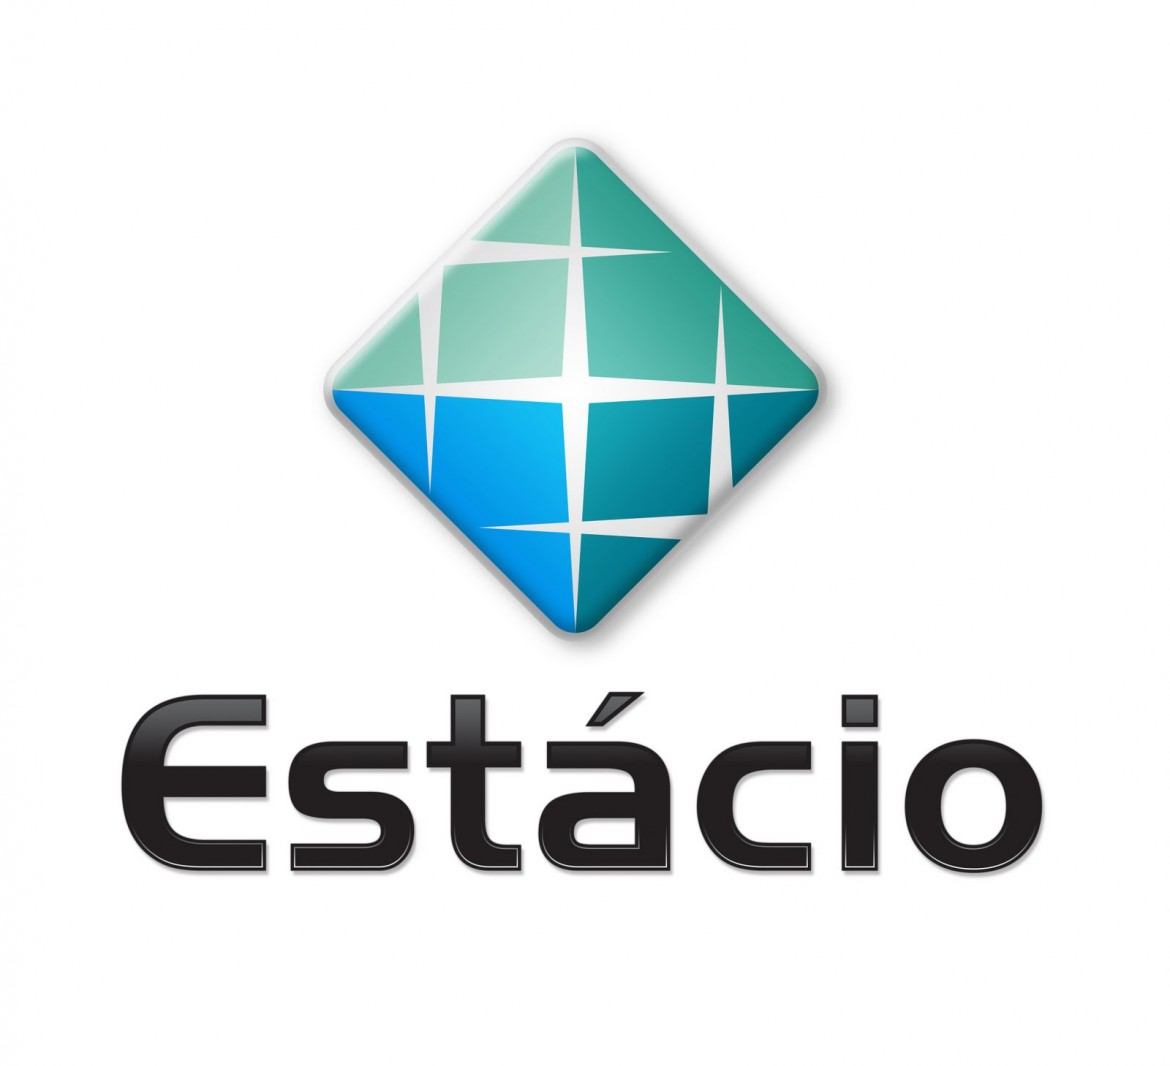 estacio-logo-faculdade-10